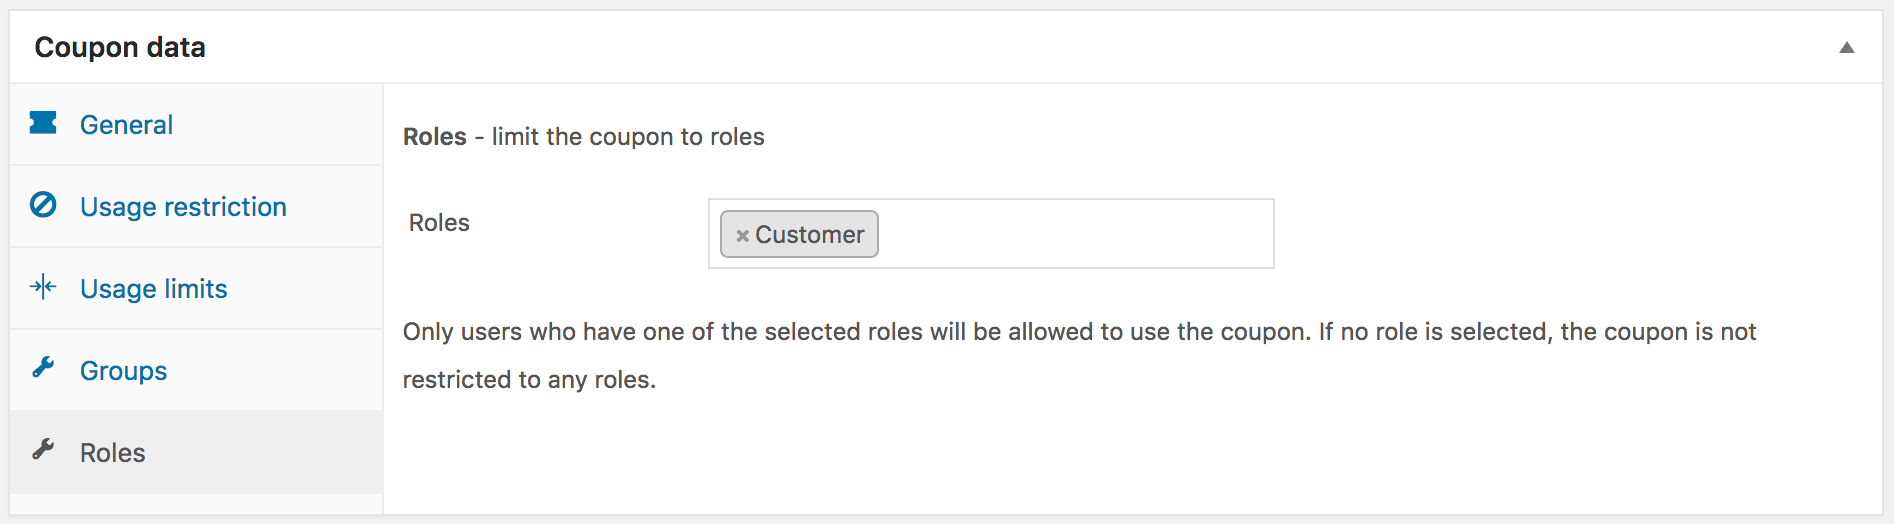 Showing the settings for a coupon restricted to the Customer role